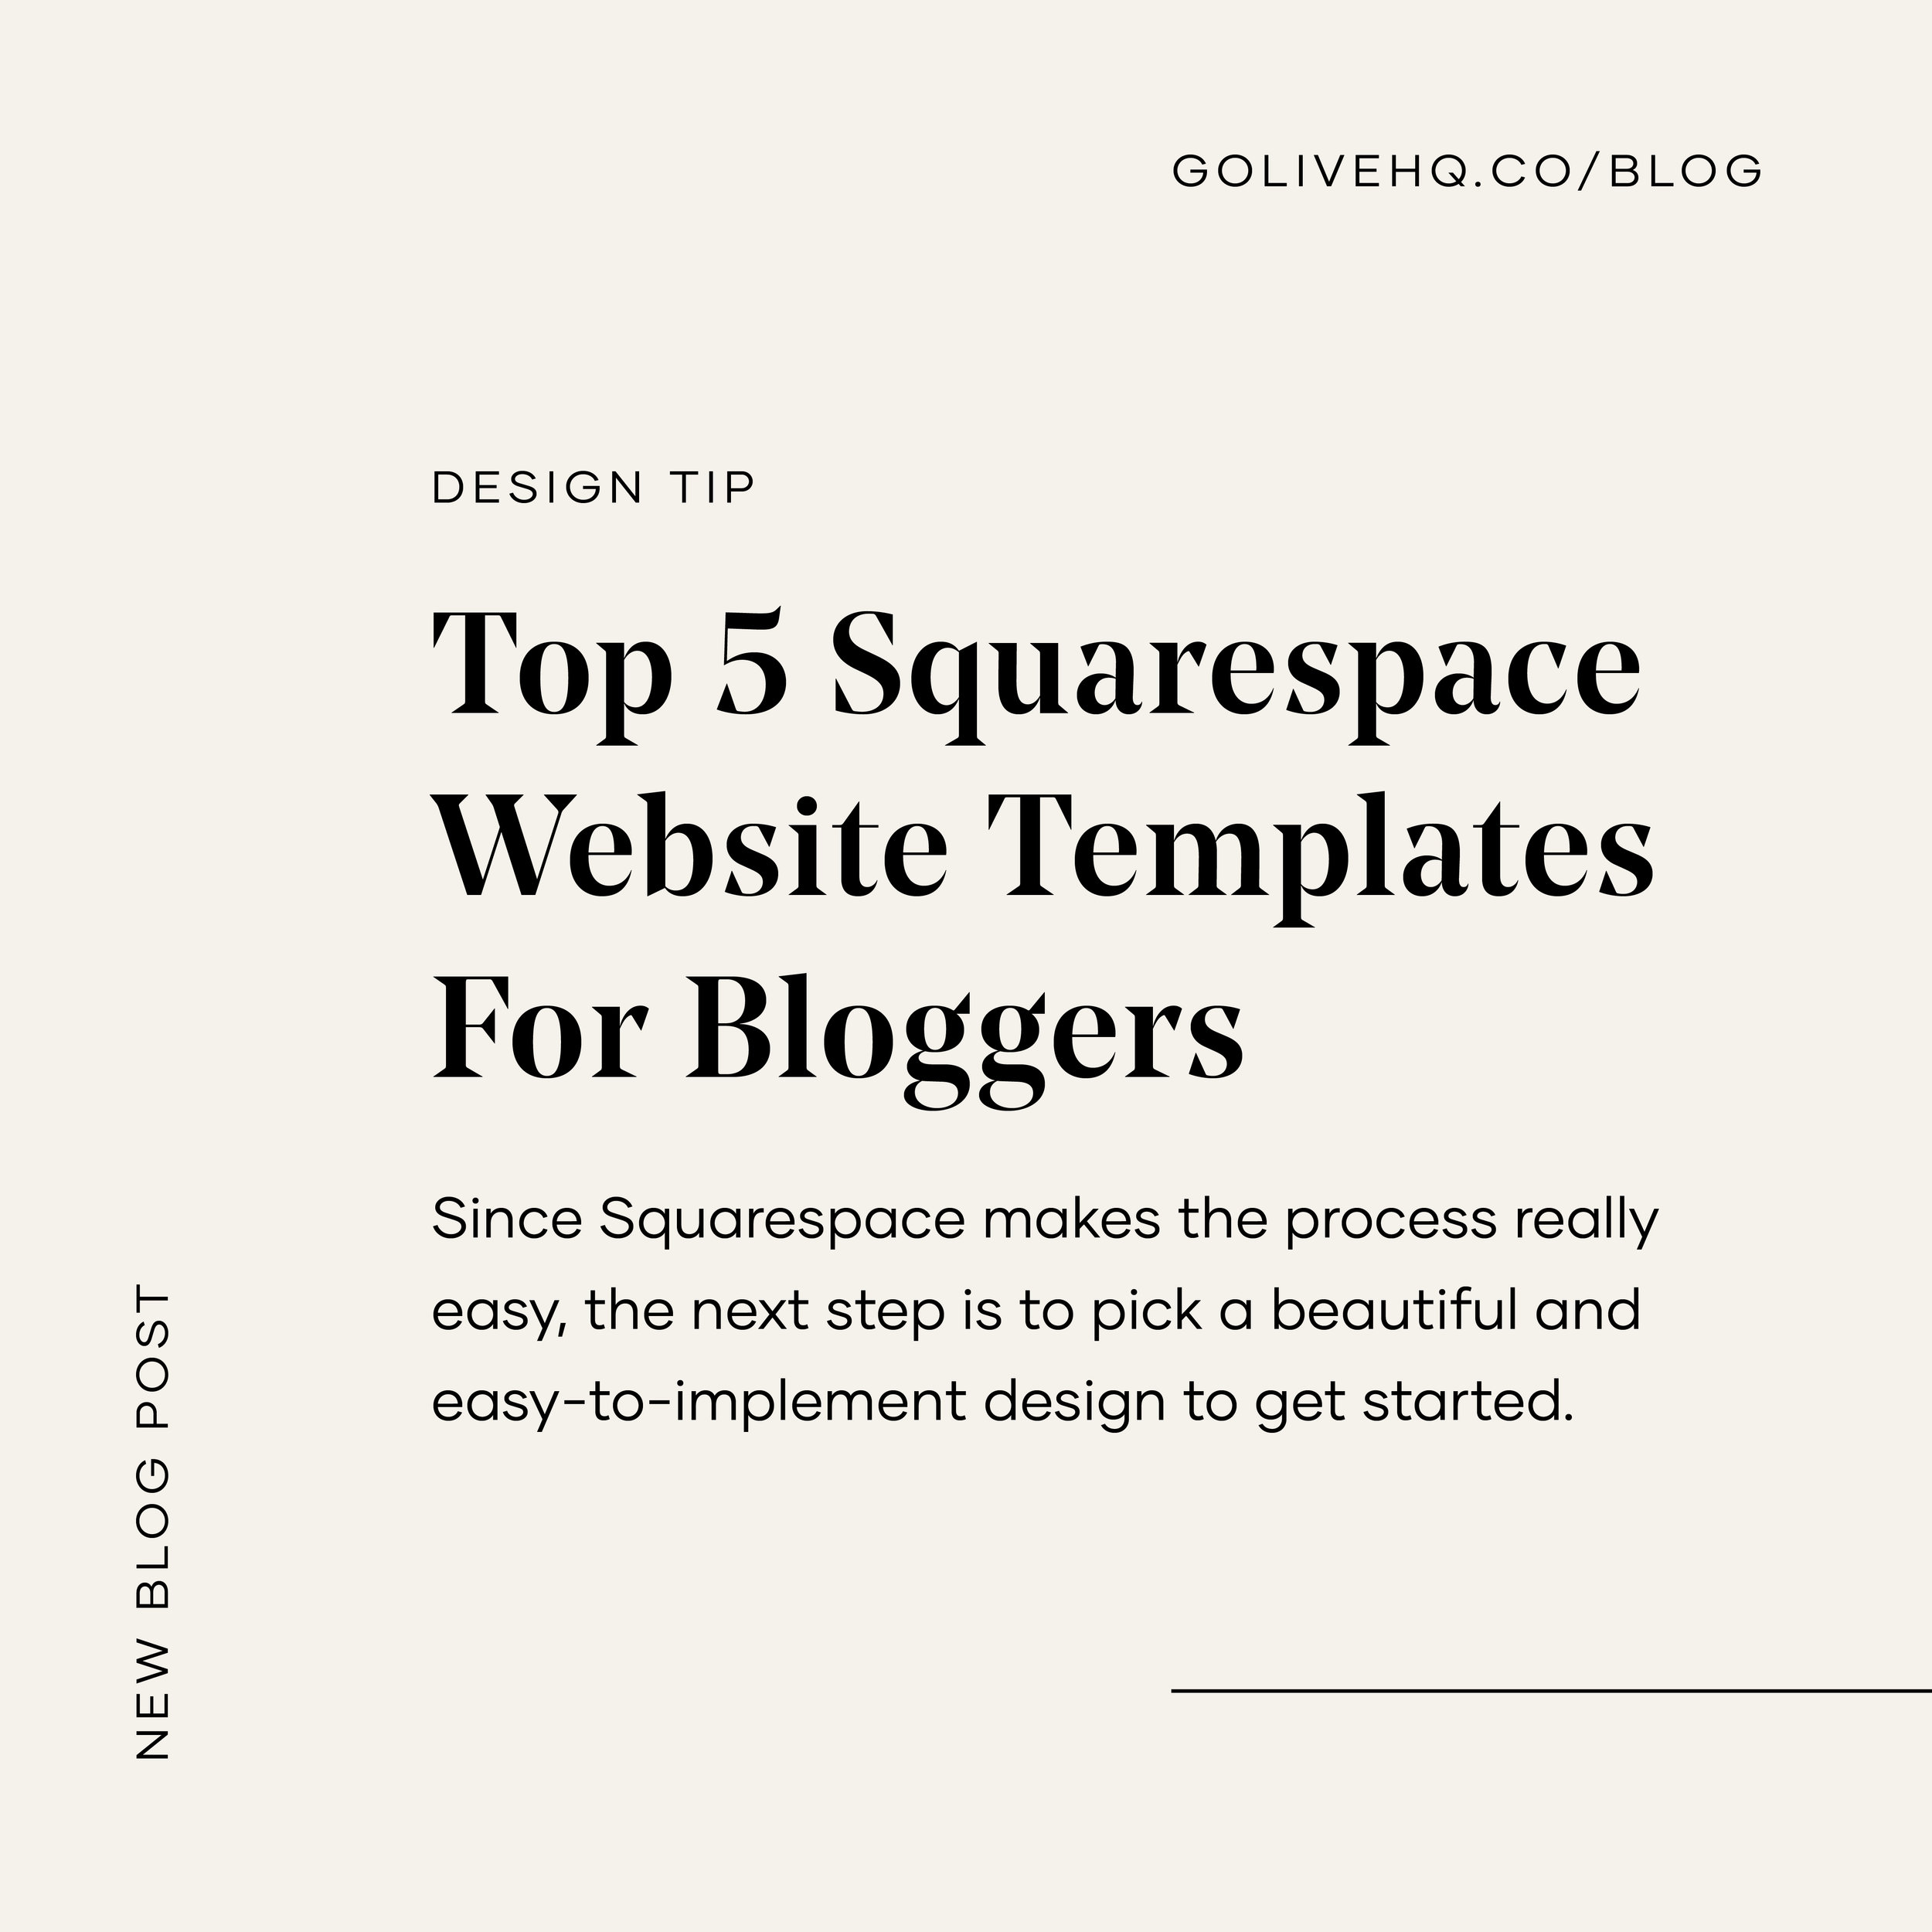 Top 5 Squarespace Website Templates For Bloggers | By GoLive